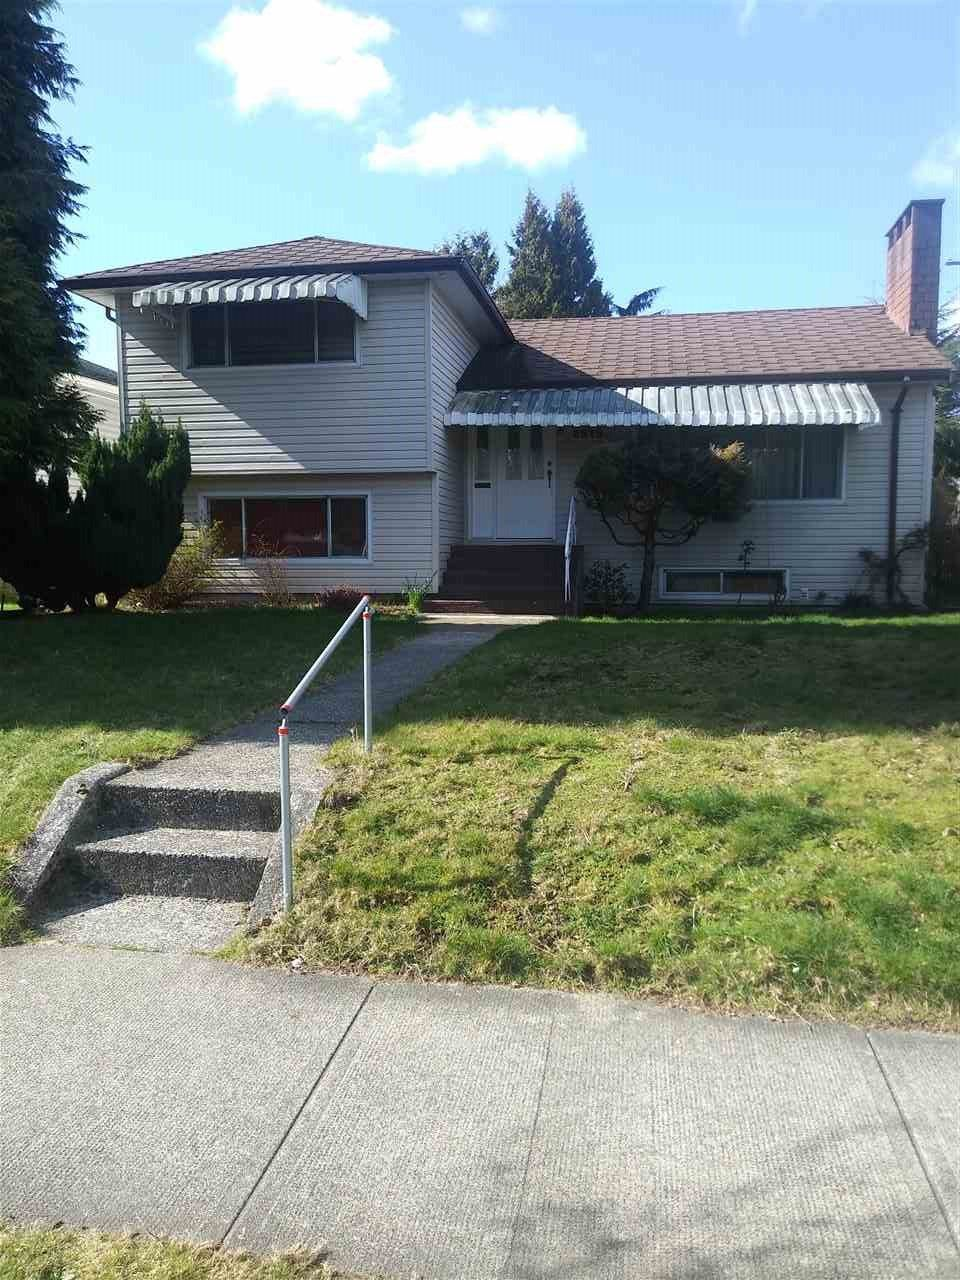 Main Photo: 6515 RUPERT Street in Vancouver: Killarney VE House for sale (Vancouver East)  : MLS®# R2443773